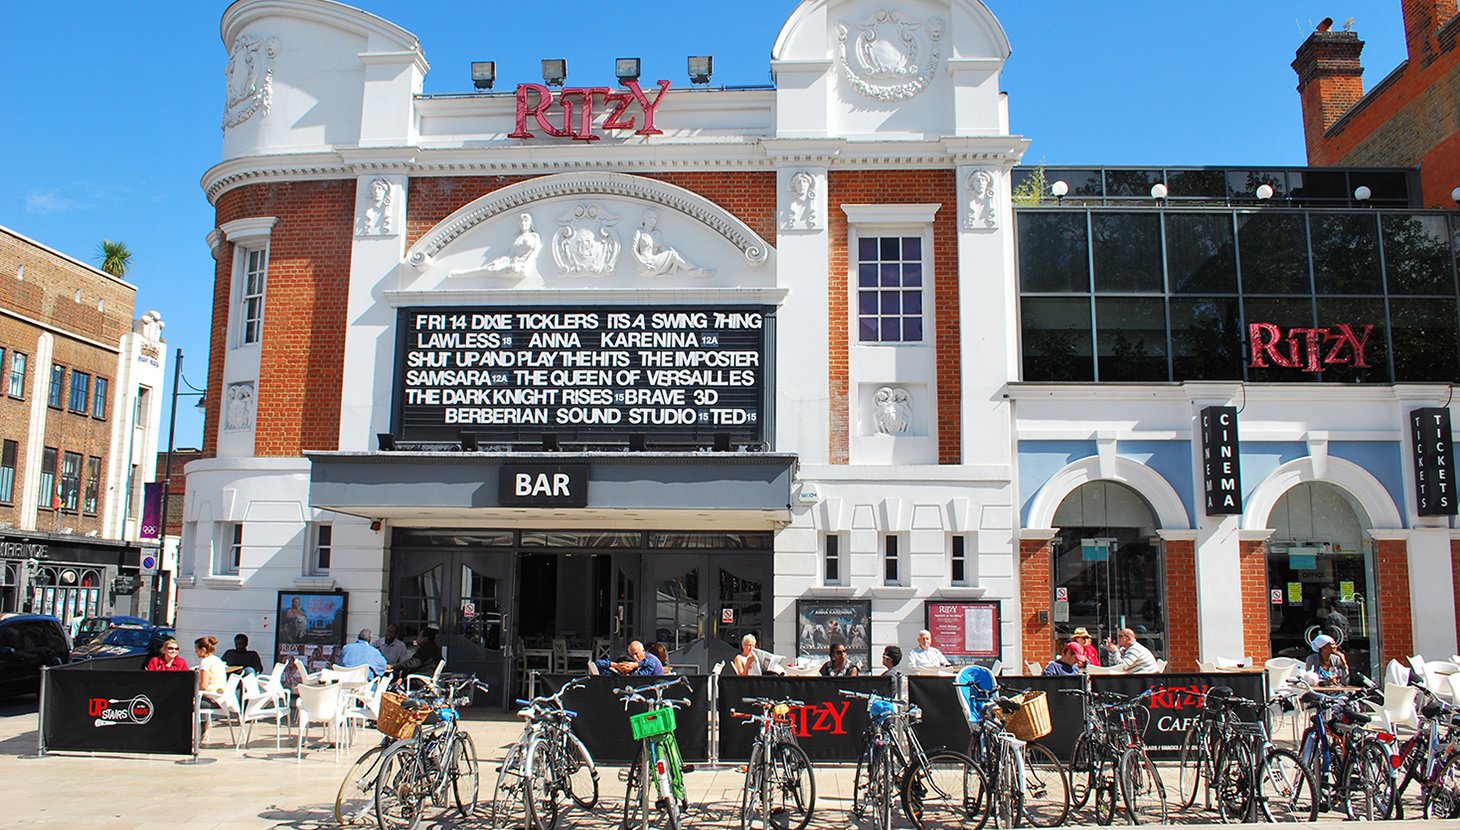 Ritzy Cinema on Windrush Square